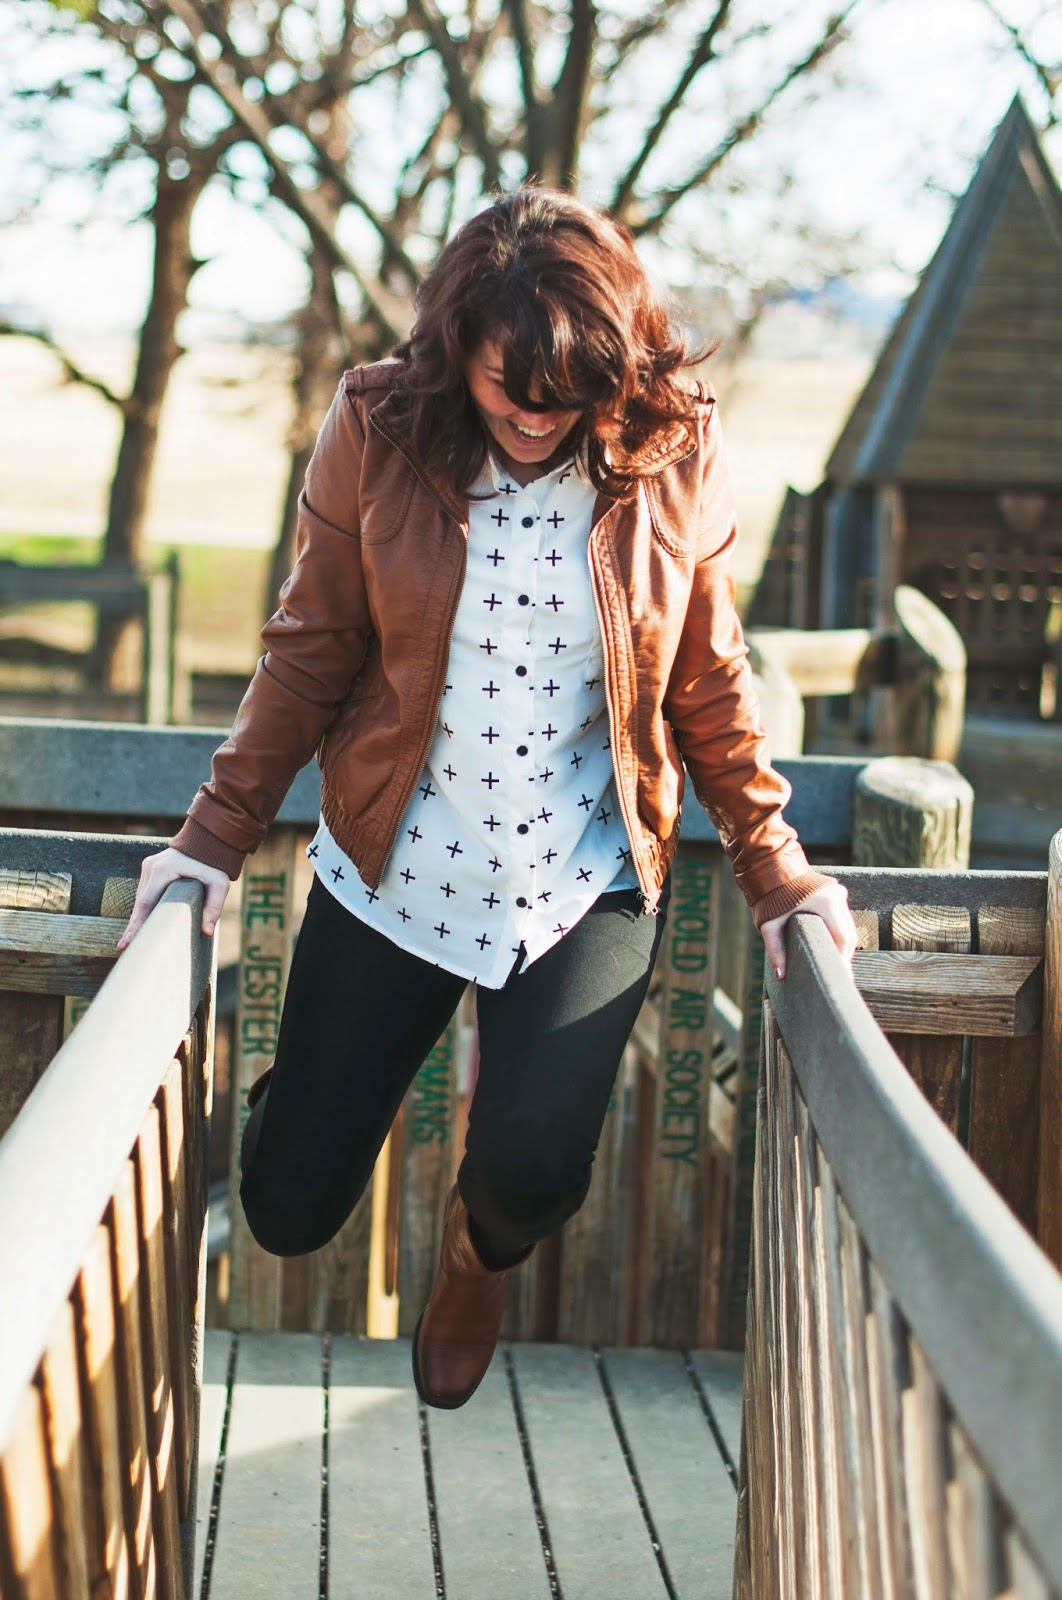 leggings, leather jacket, tunic & booties, the ultimate comfy uniform